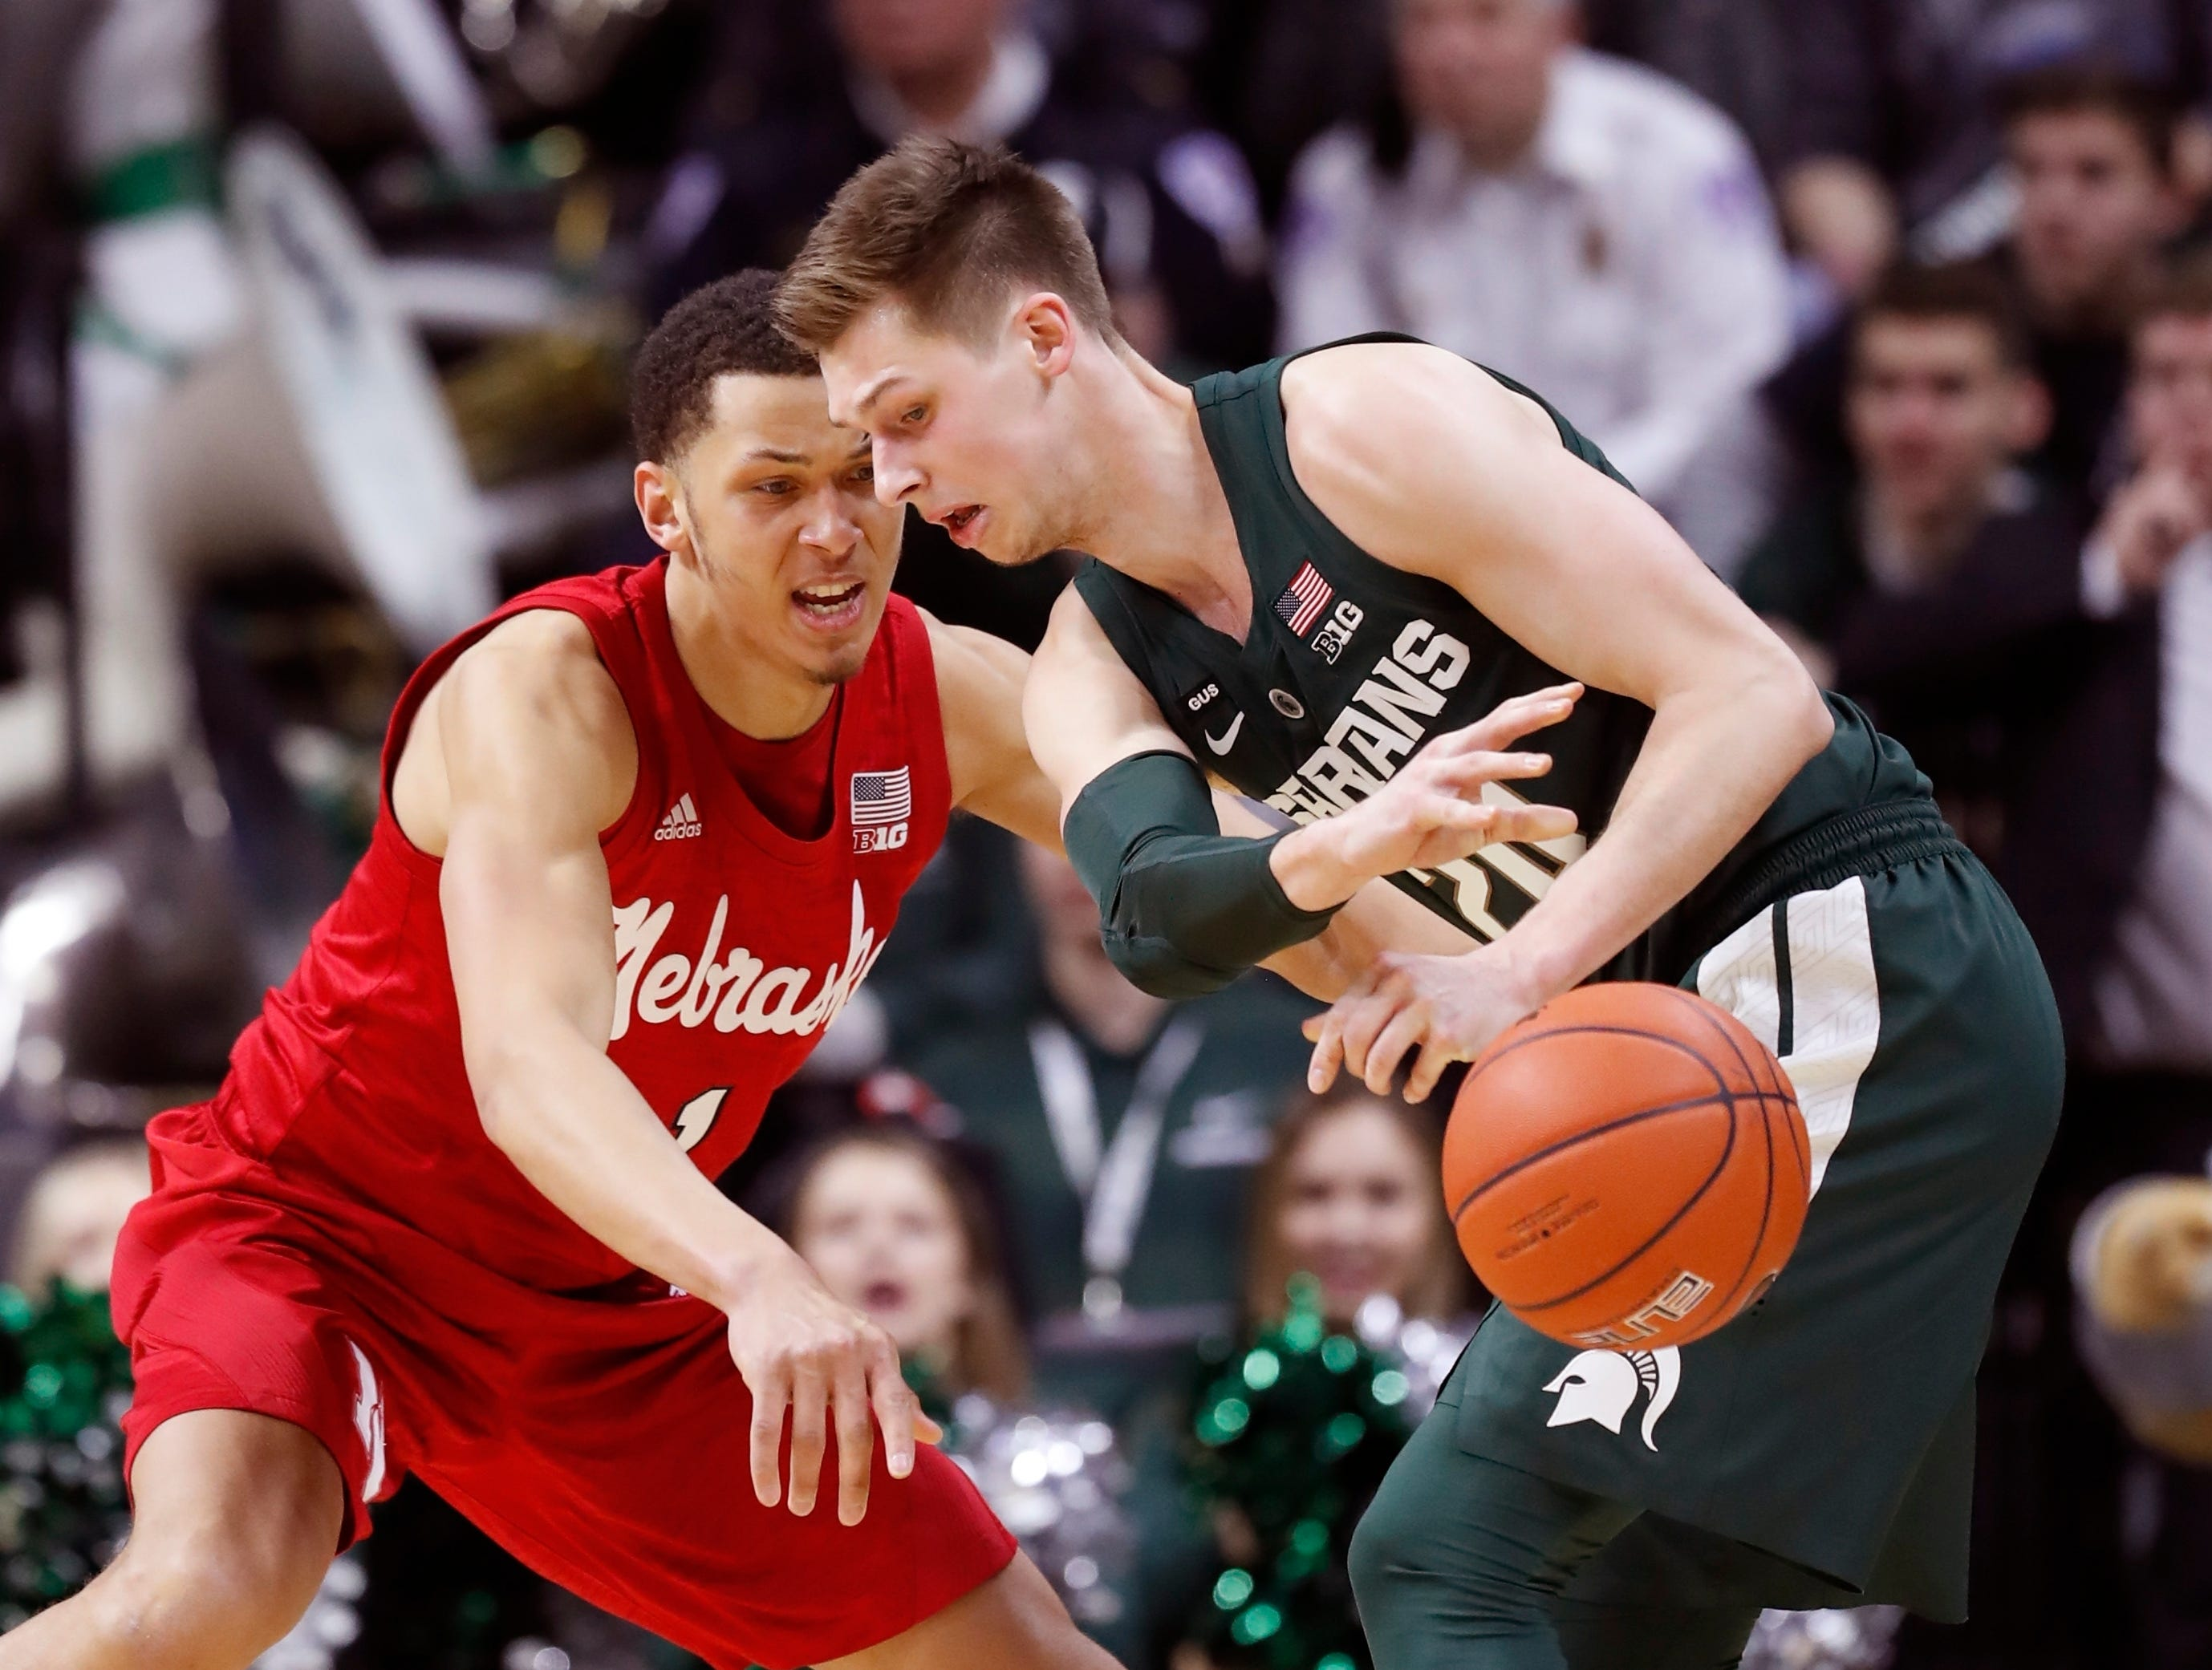 Nebraska guard Amir Harris, left, knocks the ball away from Michigan State guard Matt McQuaid, right, during the first half of an NCAA college basketball game, Tuesday, March 5, 2019, in East Lansing.